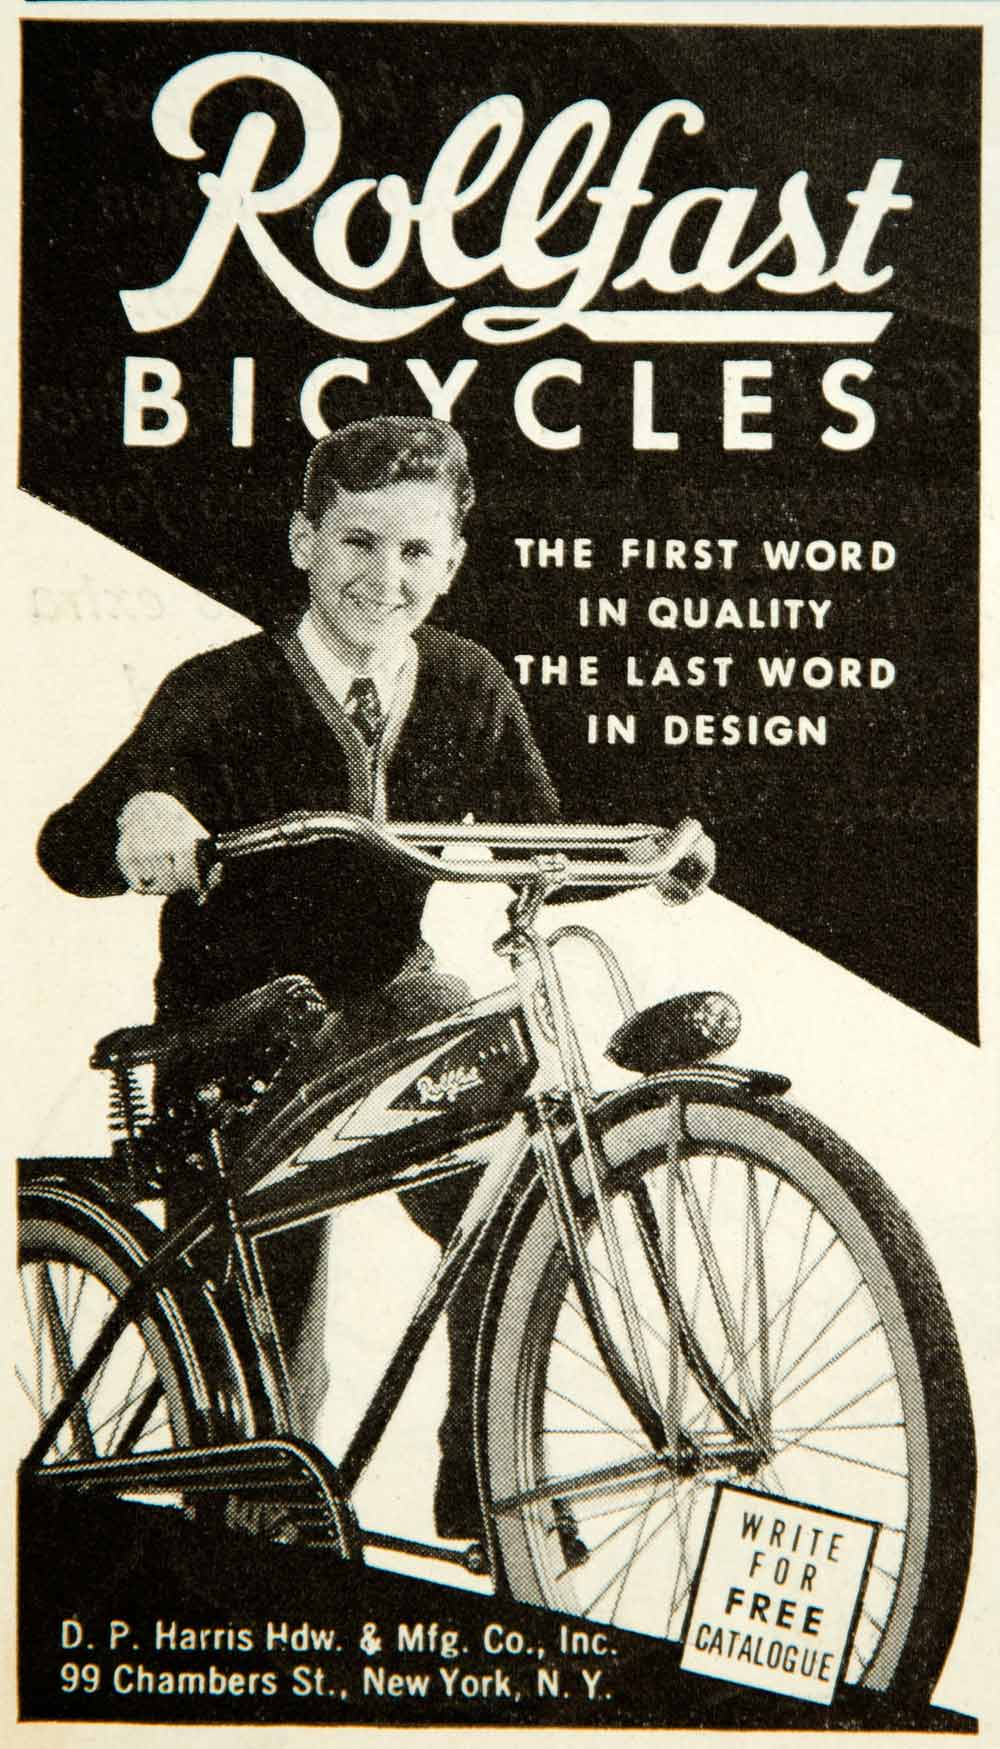 1937 Ad DP Harris Hardware 99 Chambers St NY Rollfast Bicycles YAB3